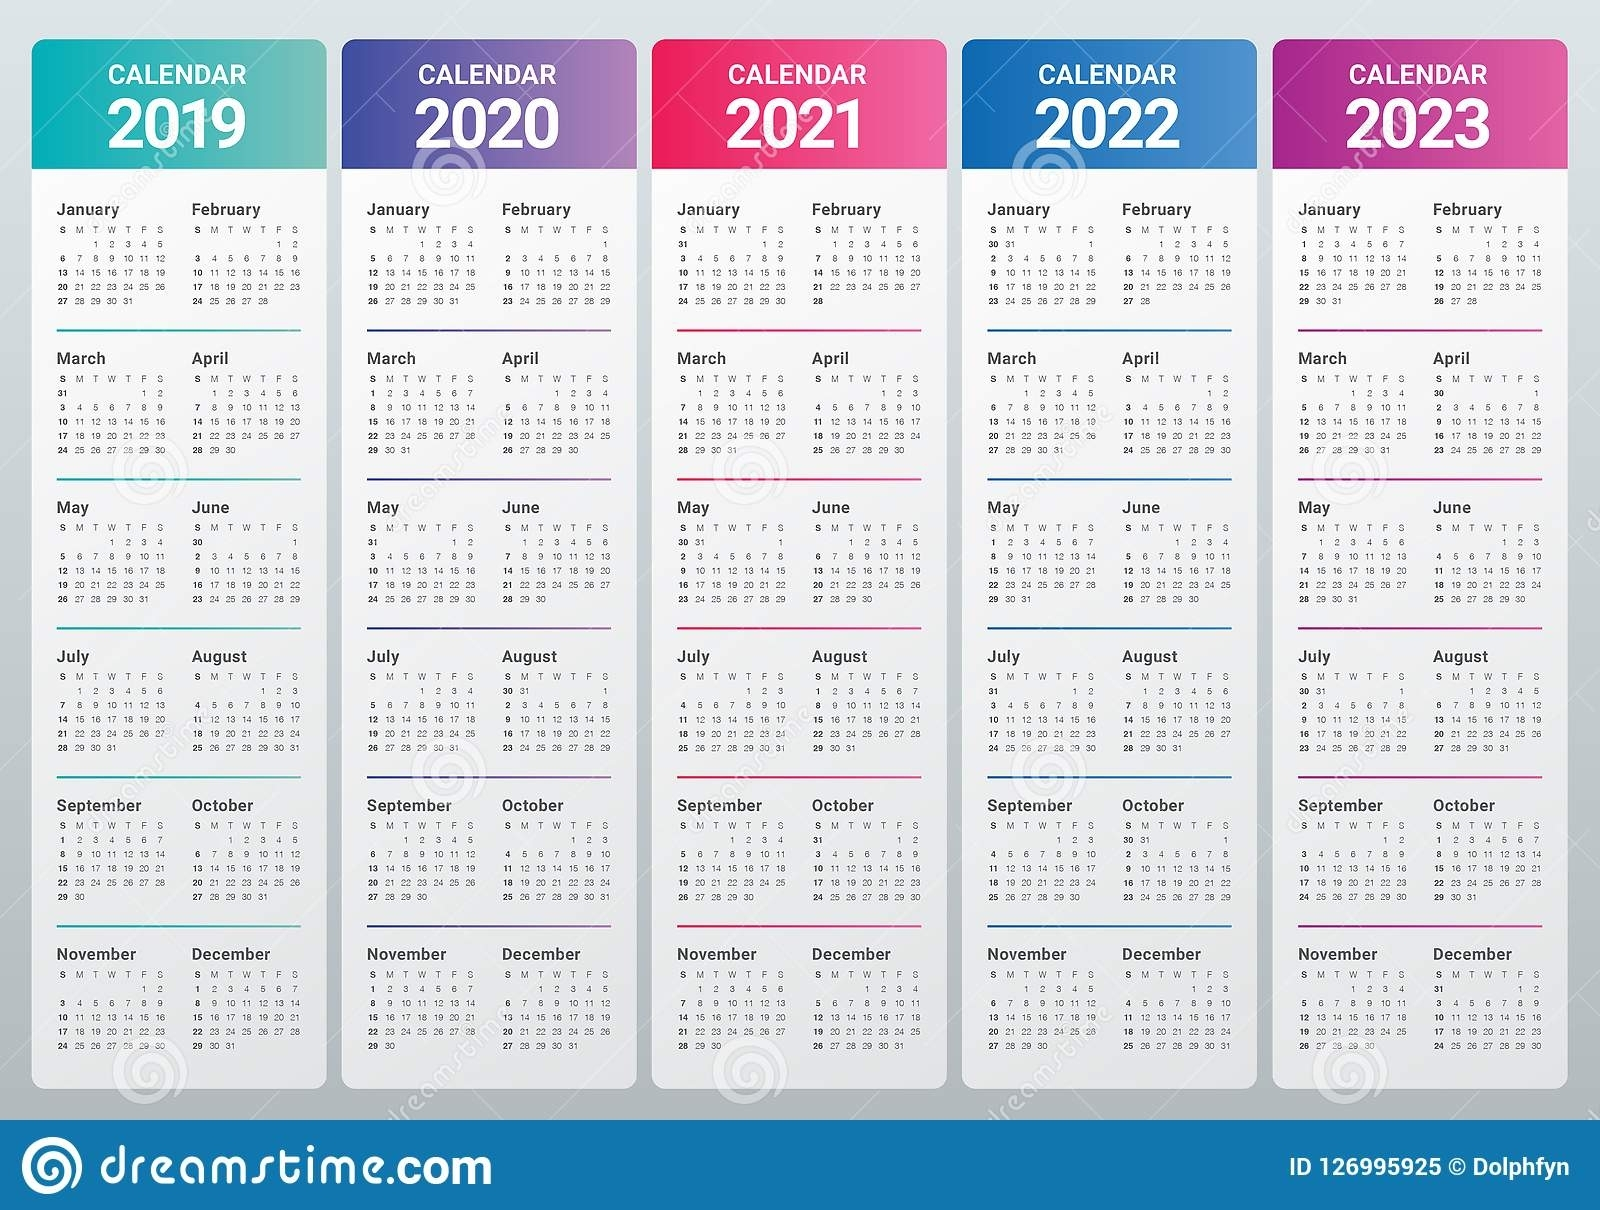 Year 2019 2020 2021 2022 2023 Calendar Vector Design Template Stock for Free Prinable Calenders 2020 To 2023